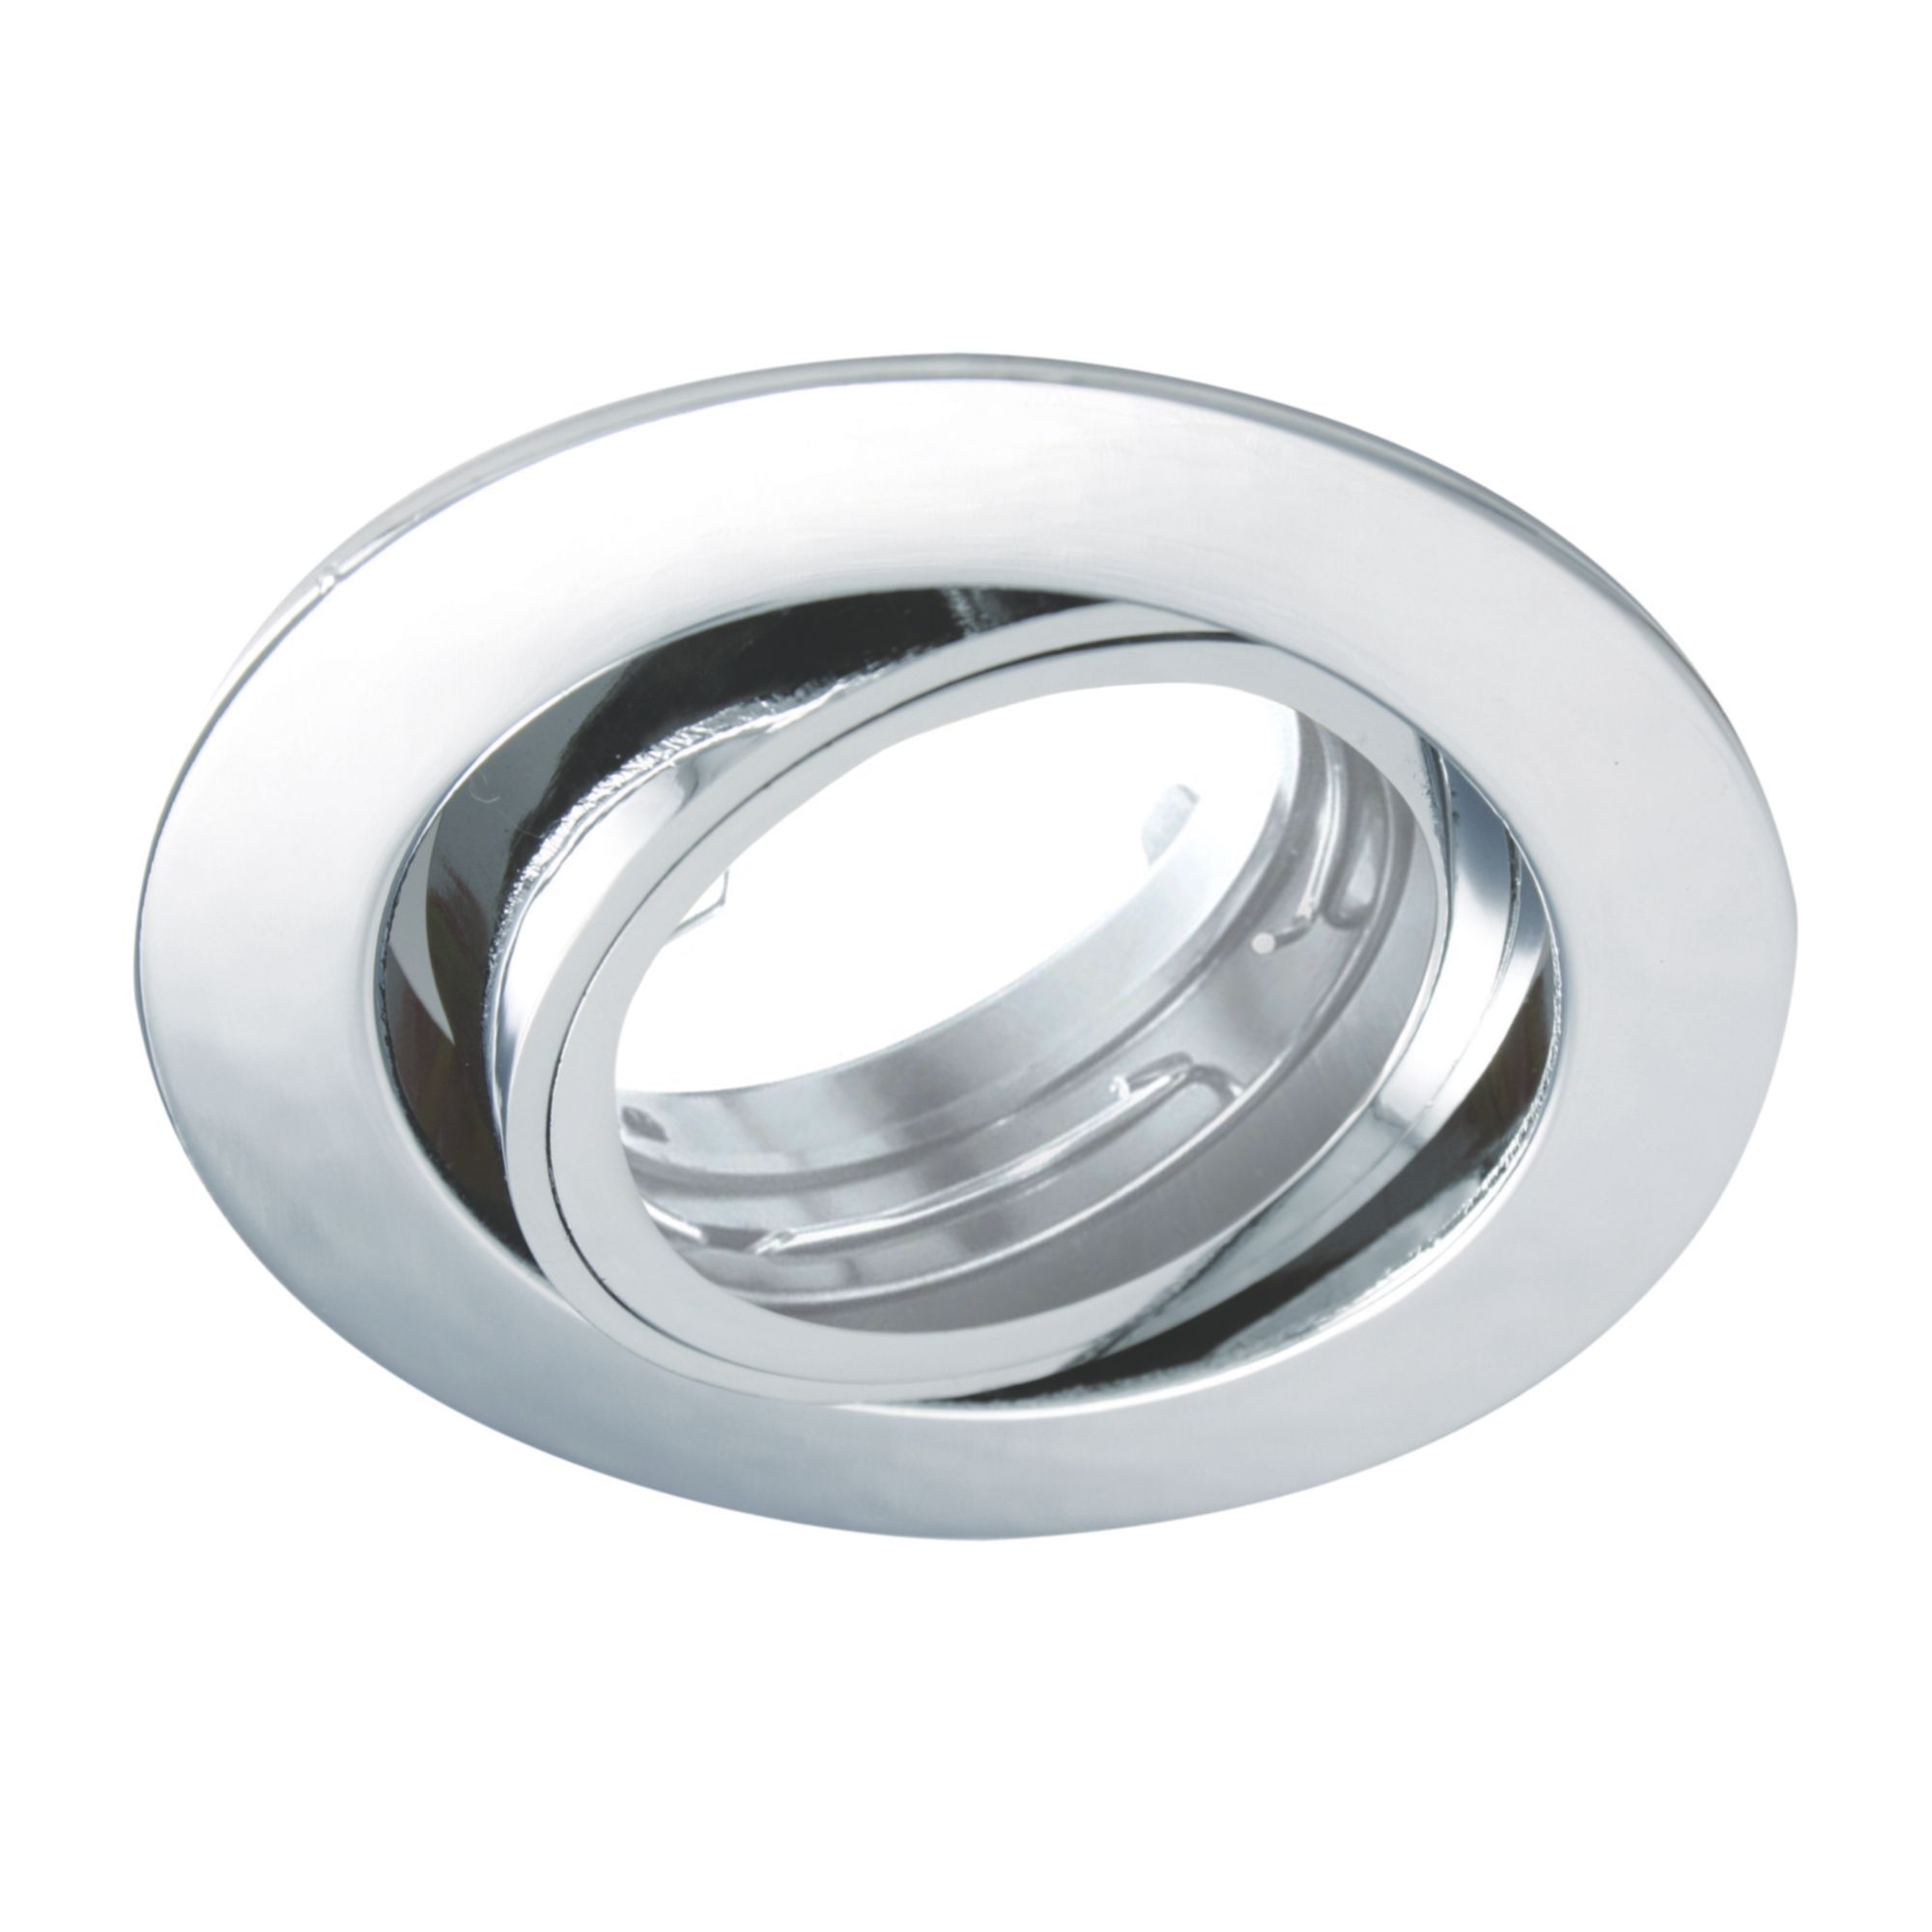 Chrome Kitchen Ceiling Lighting